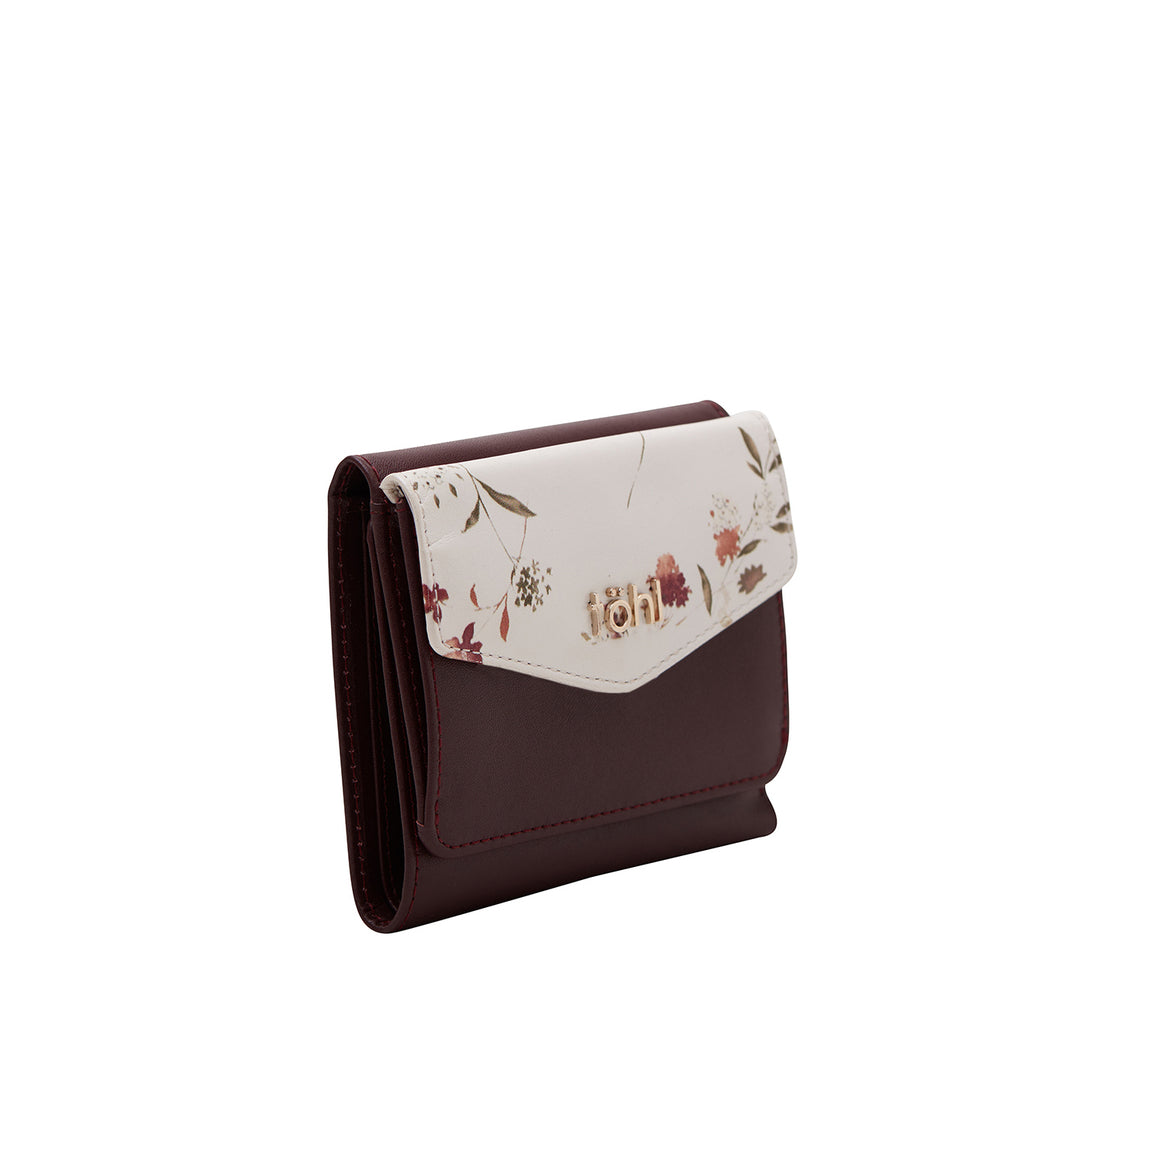 WT 0023 - TOHL HARRIET WOMEN'S WALLET - BURGUNDY